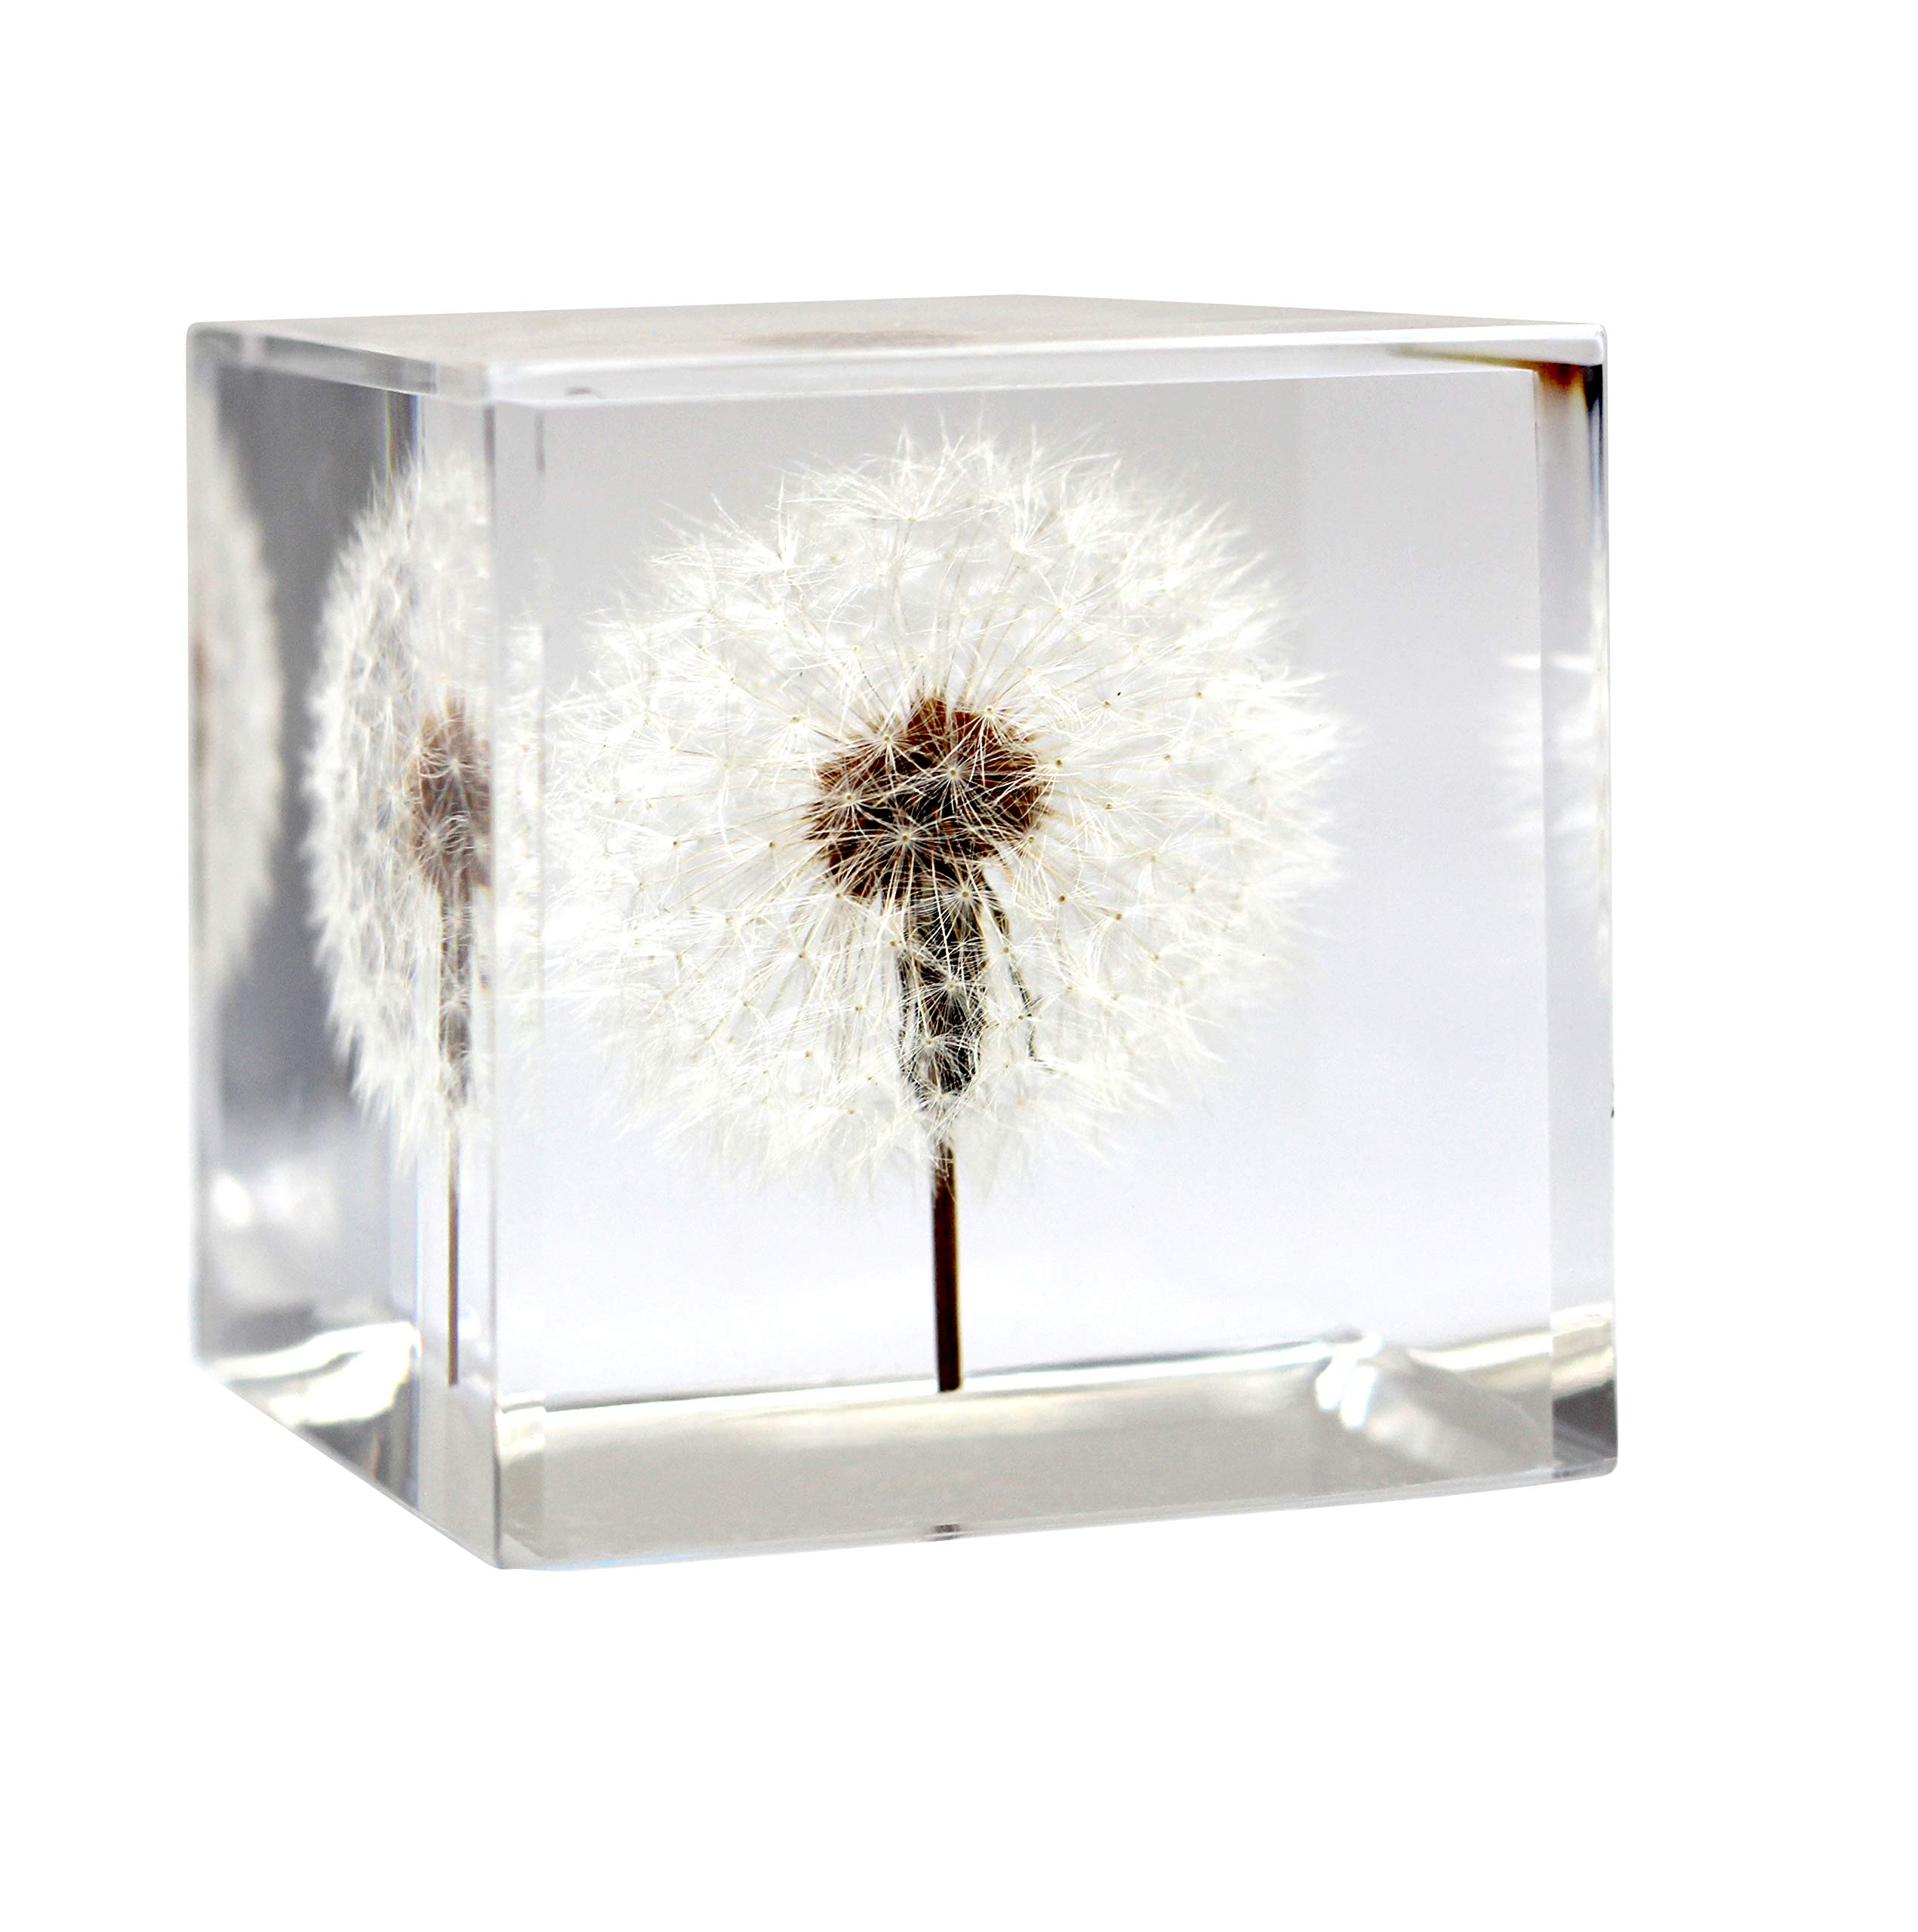 Dandelion Paperweight Cube - A Real Dandelion Puff! (Cube and Cuboid) (Cube (2.25'' x 2.25'' x 2.25'')) by Dandelion Collective LLC